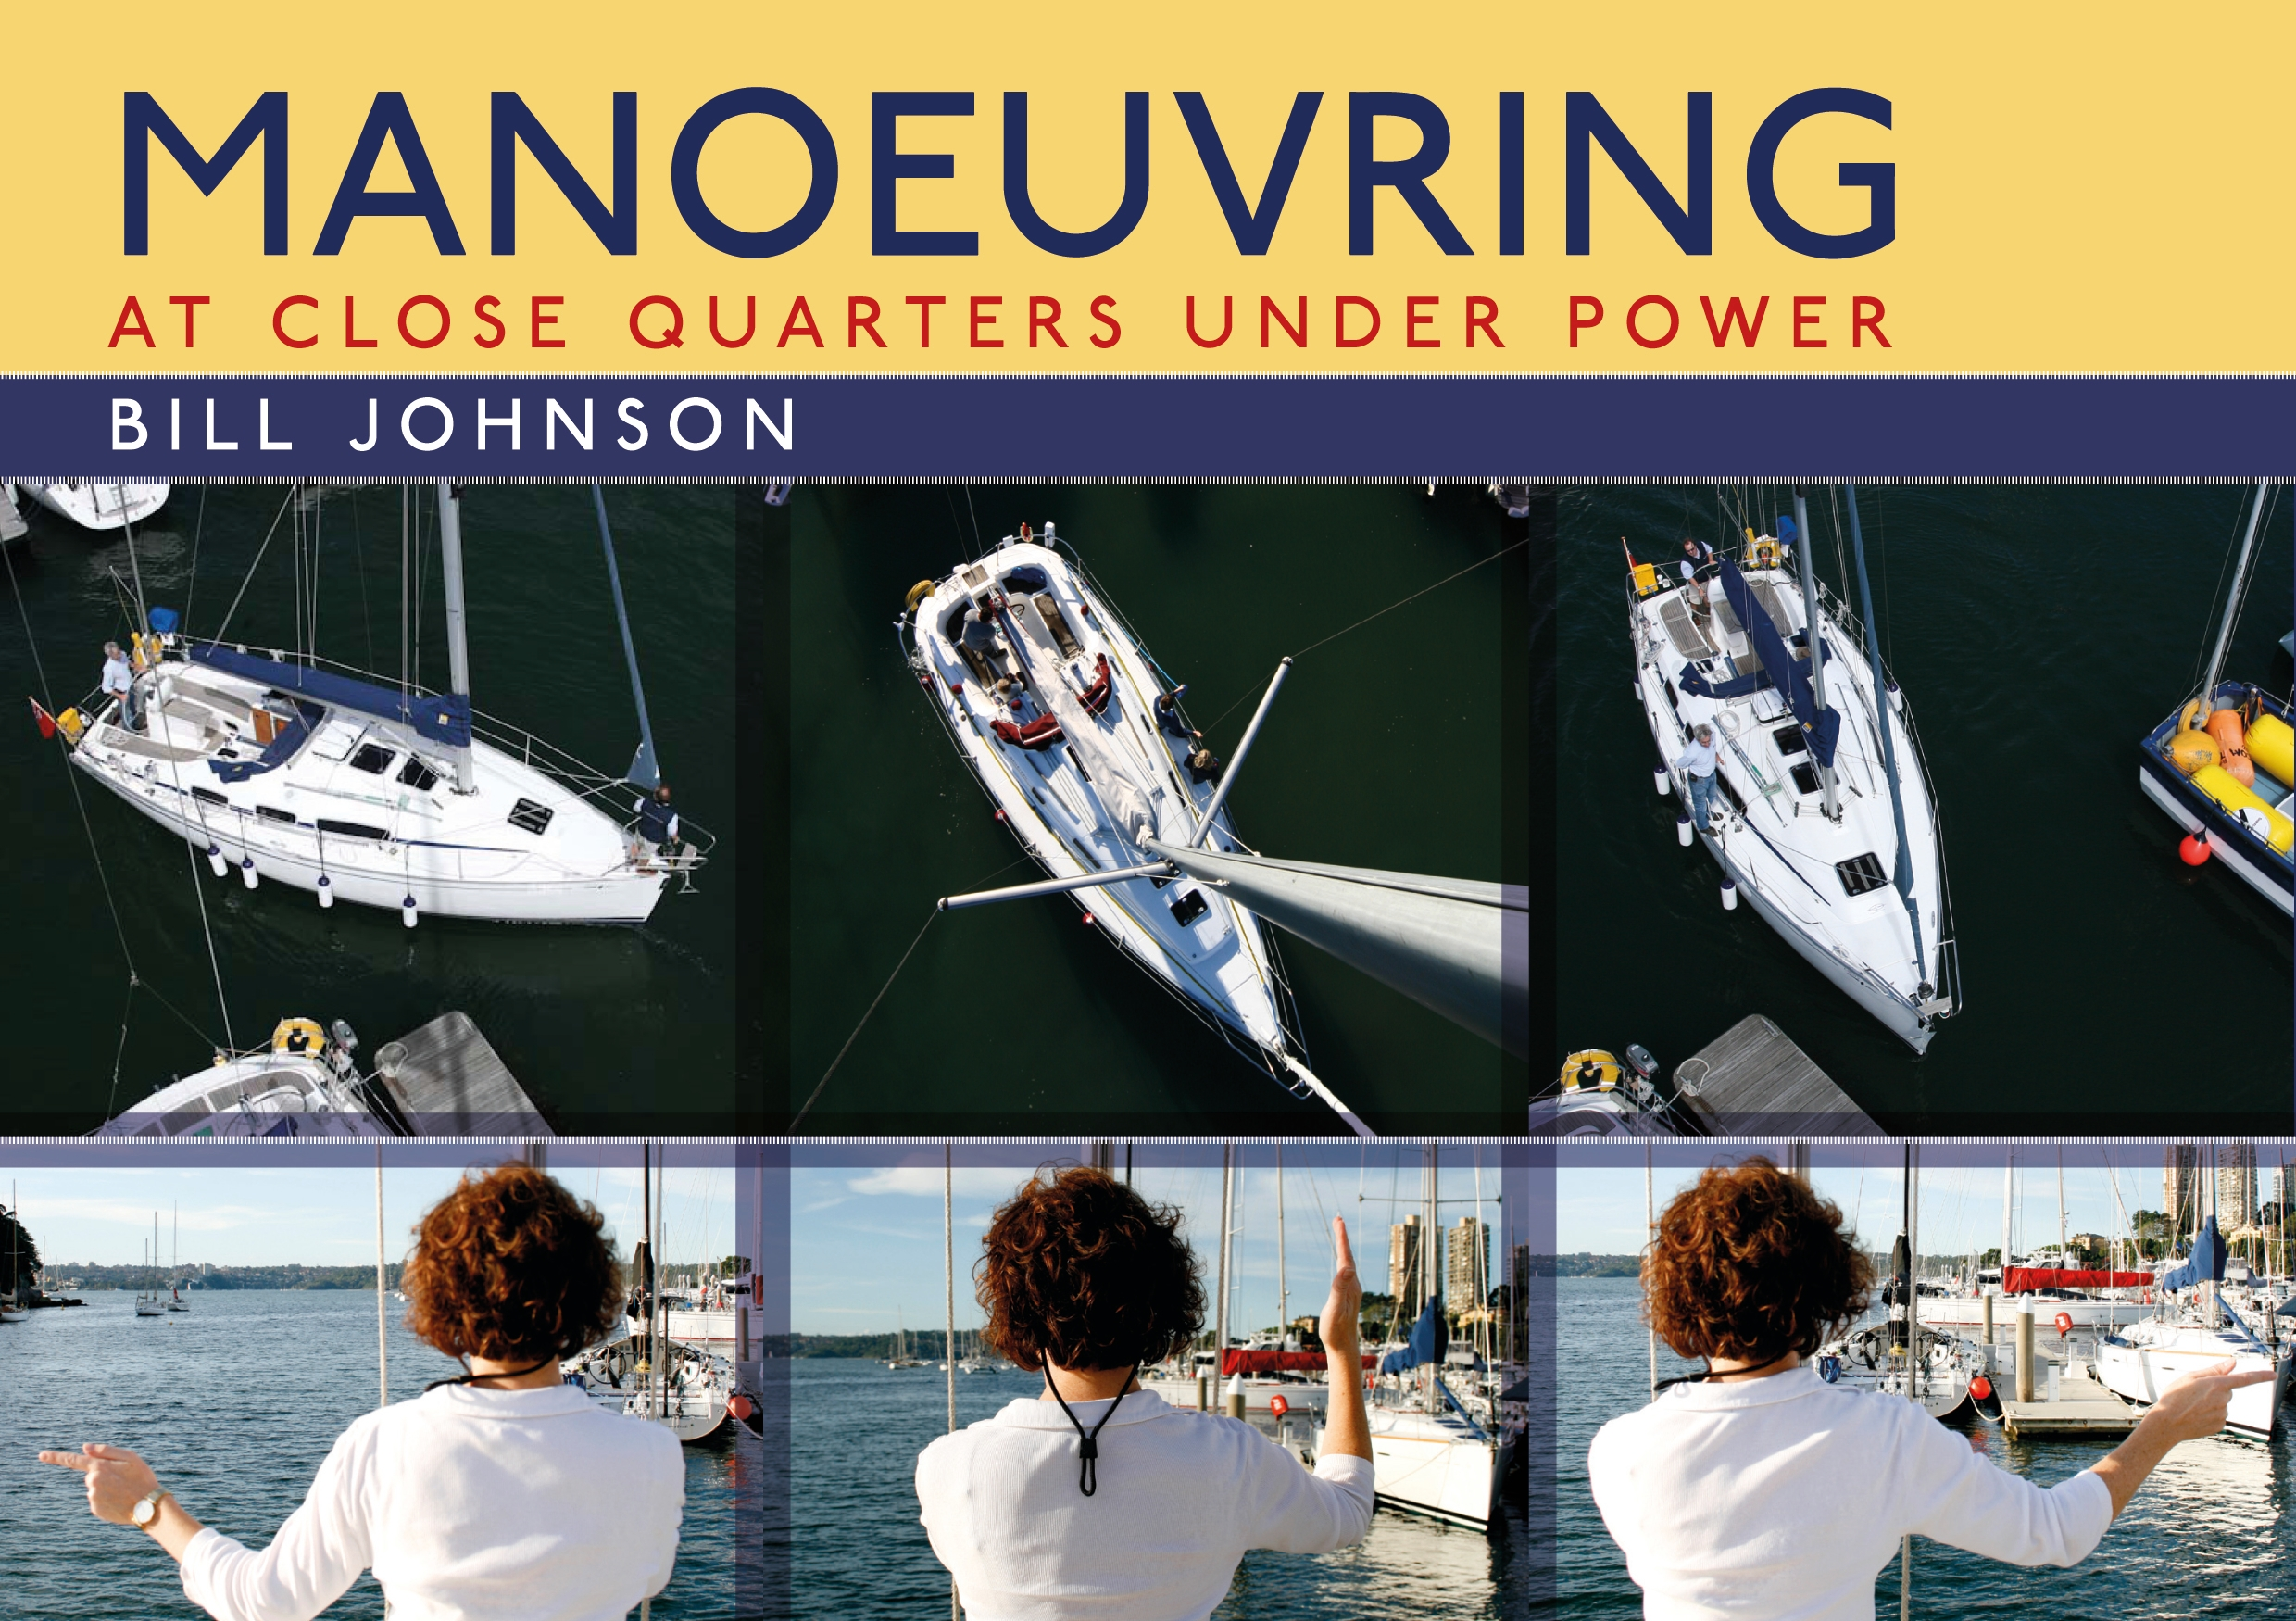 Manoeuvring At Close Quarters Under Power